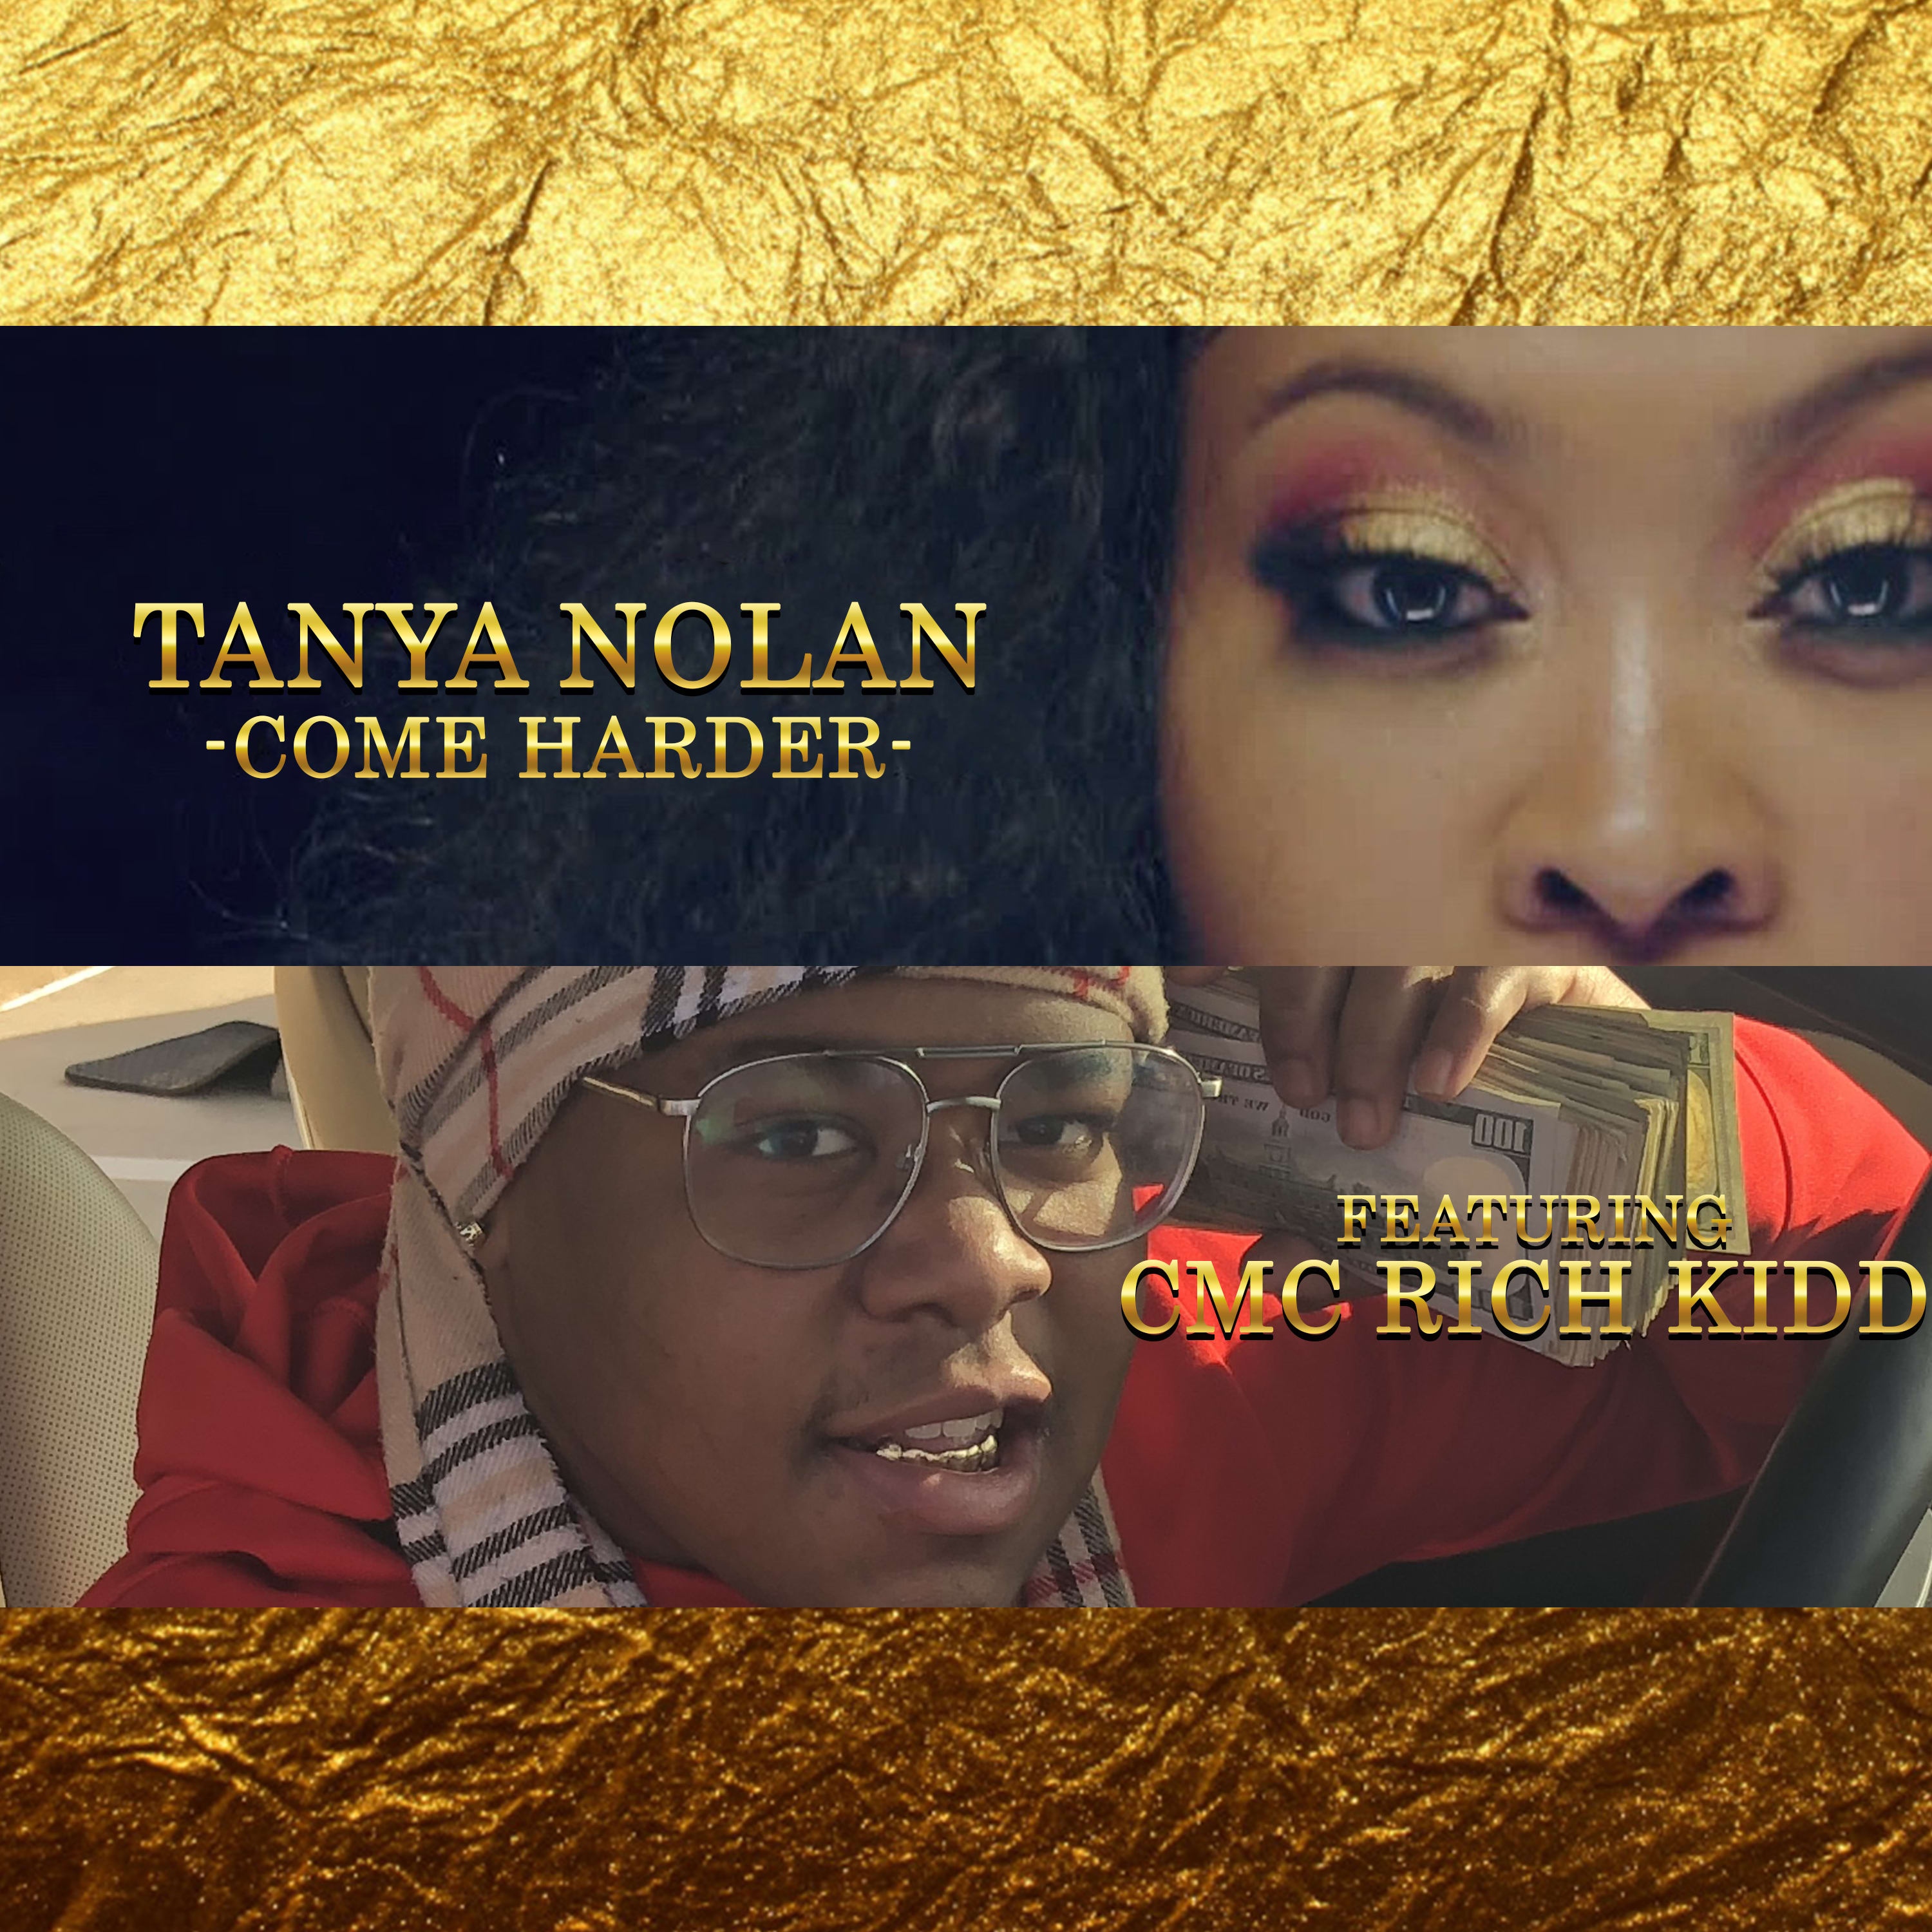 New Video: Tanya Nolan – Come Harder Featuring CMC Rich Kidd | @tanyanolan